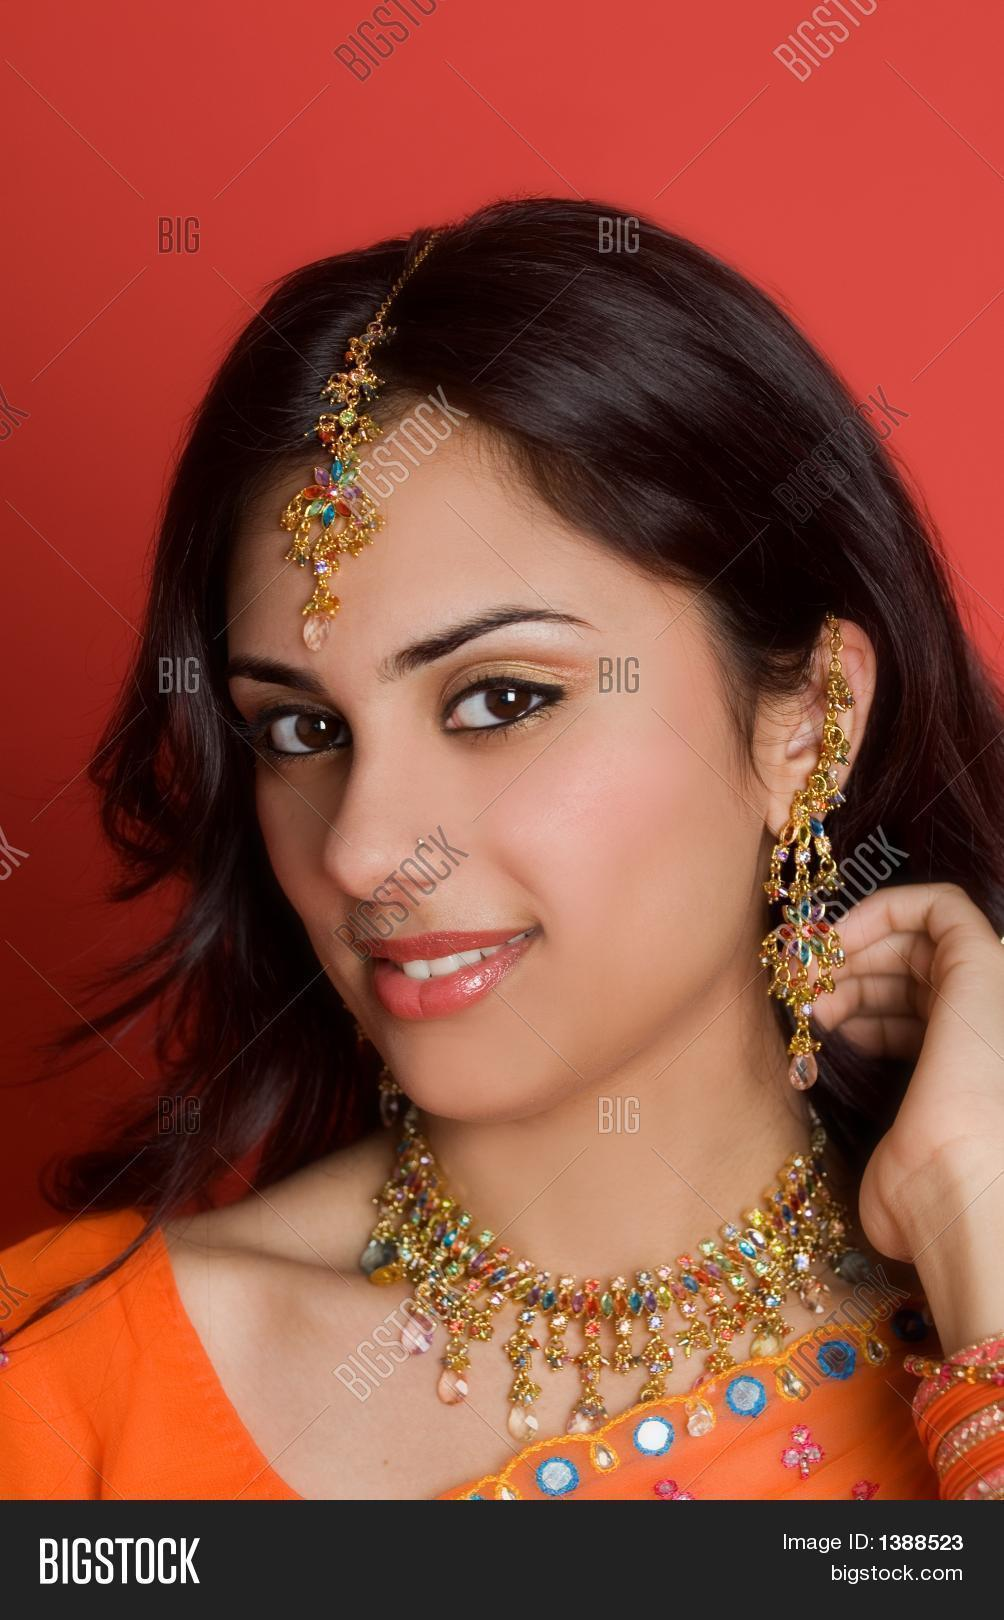 timnath hindu single women Indian singles waiting for dating 1,128 likes 8 talking about this are you waiting for love in your life so come and talk with indian singles at.